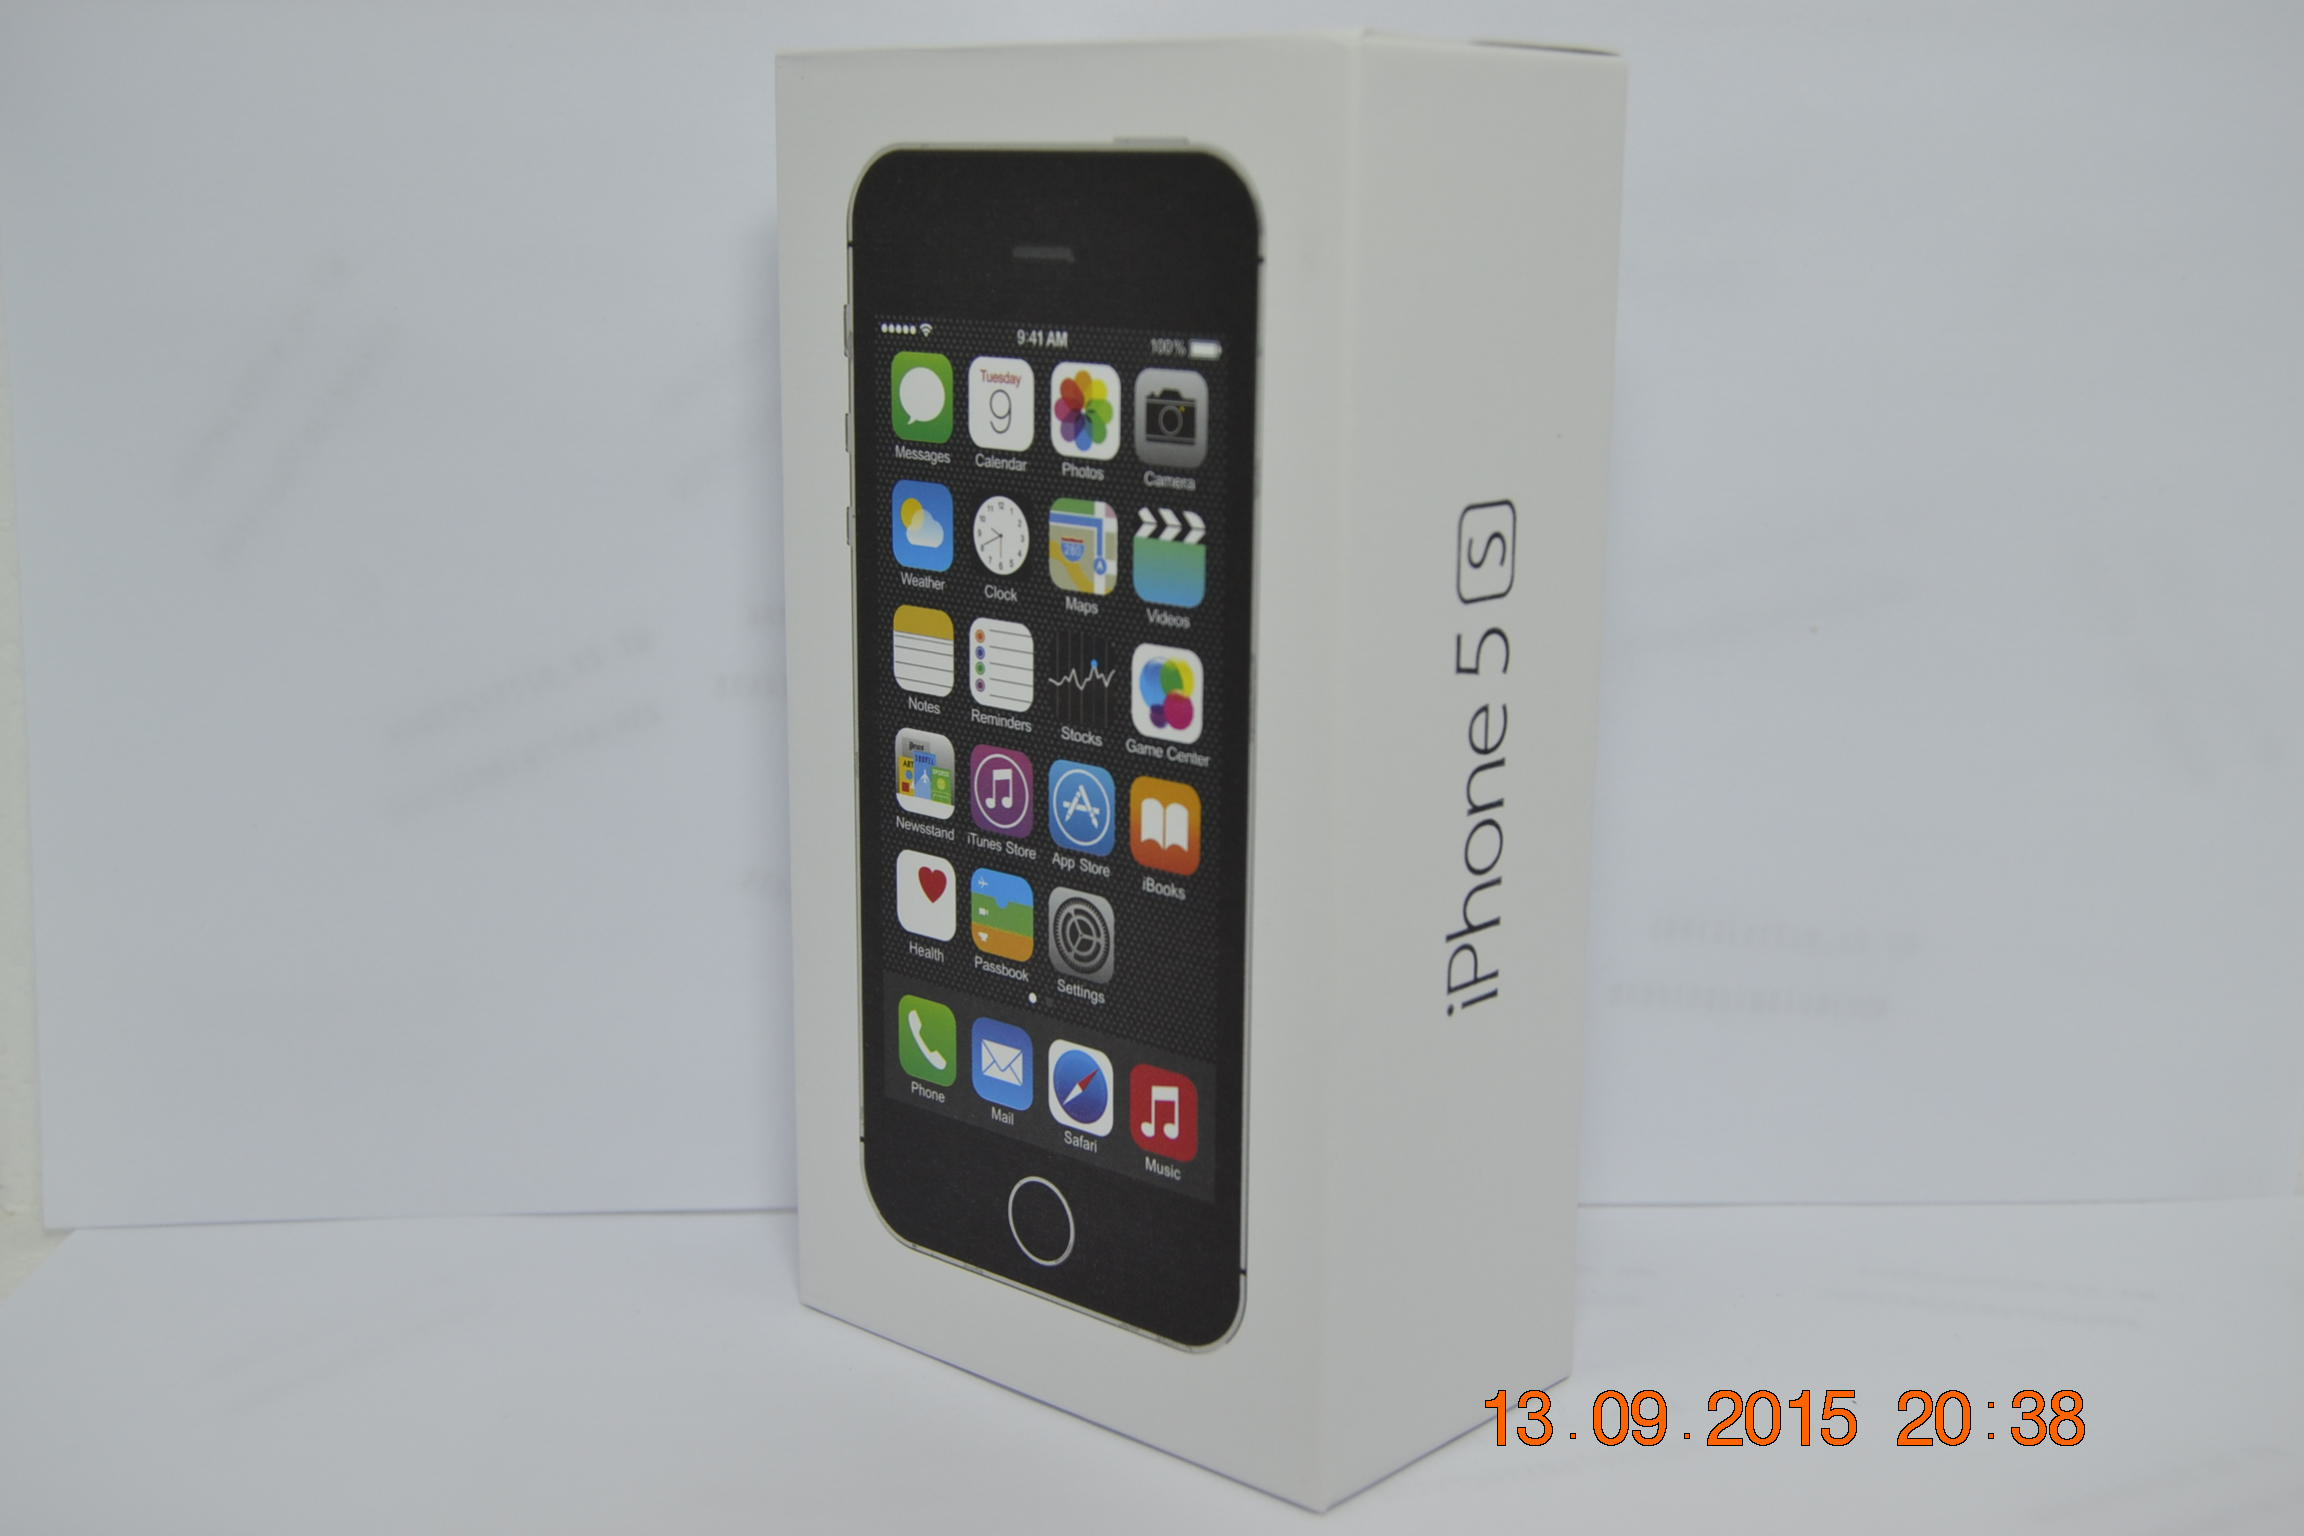 Venta De Moviles Libres Iphone Telefono Movil Original Apple Iphone 5s 16gb Libre Nuevo